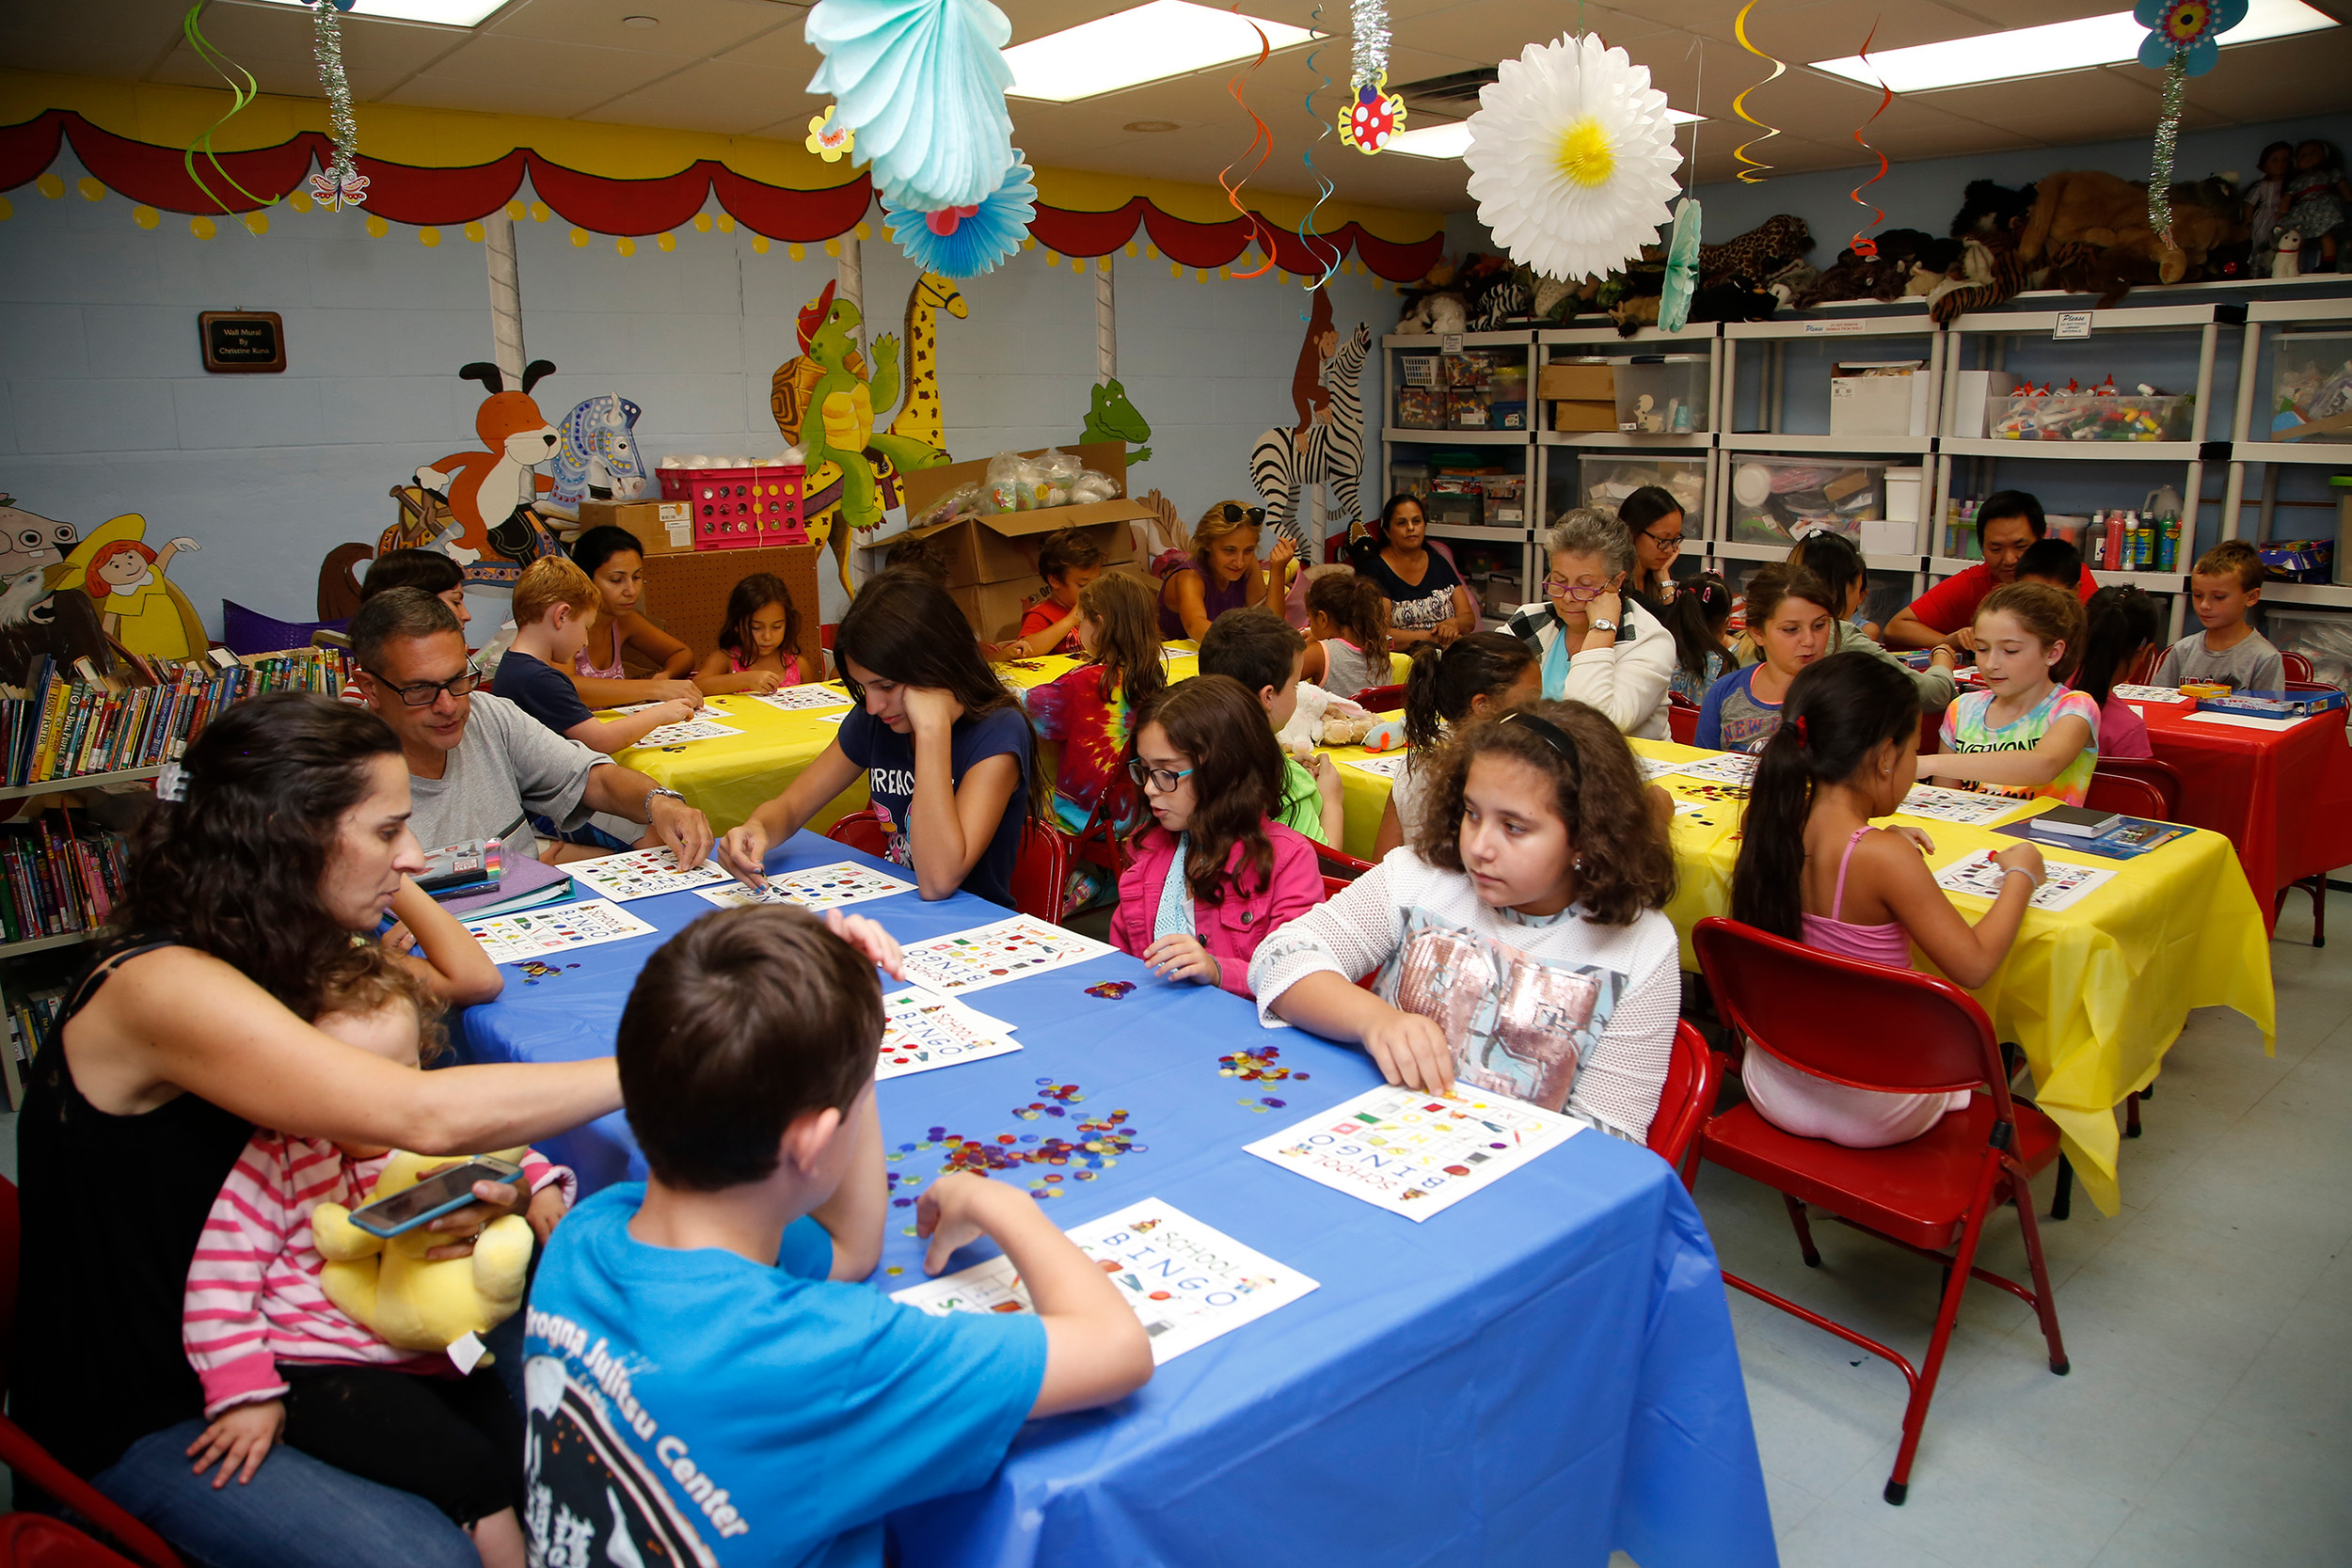 Franklin Square Public Library hosted a Back-to-School Bingo game for children and their families on Aug. 28.